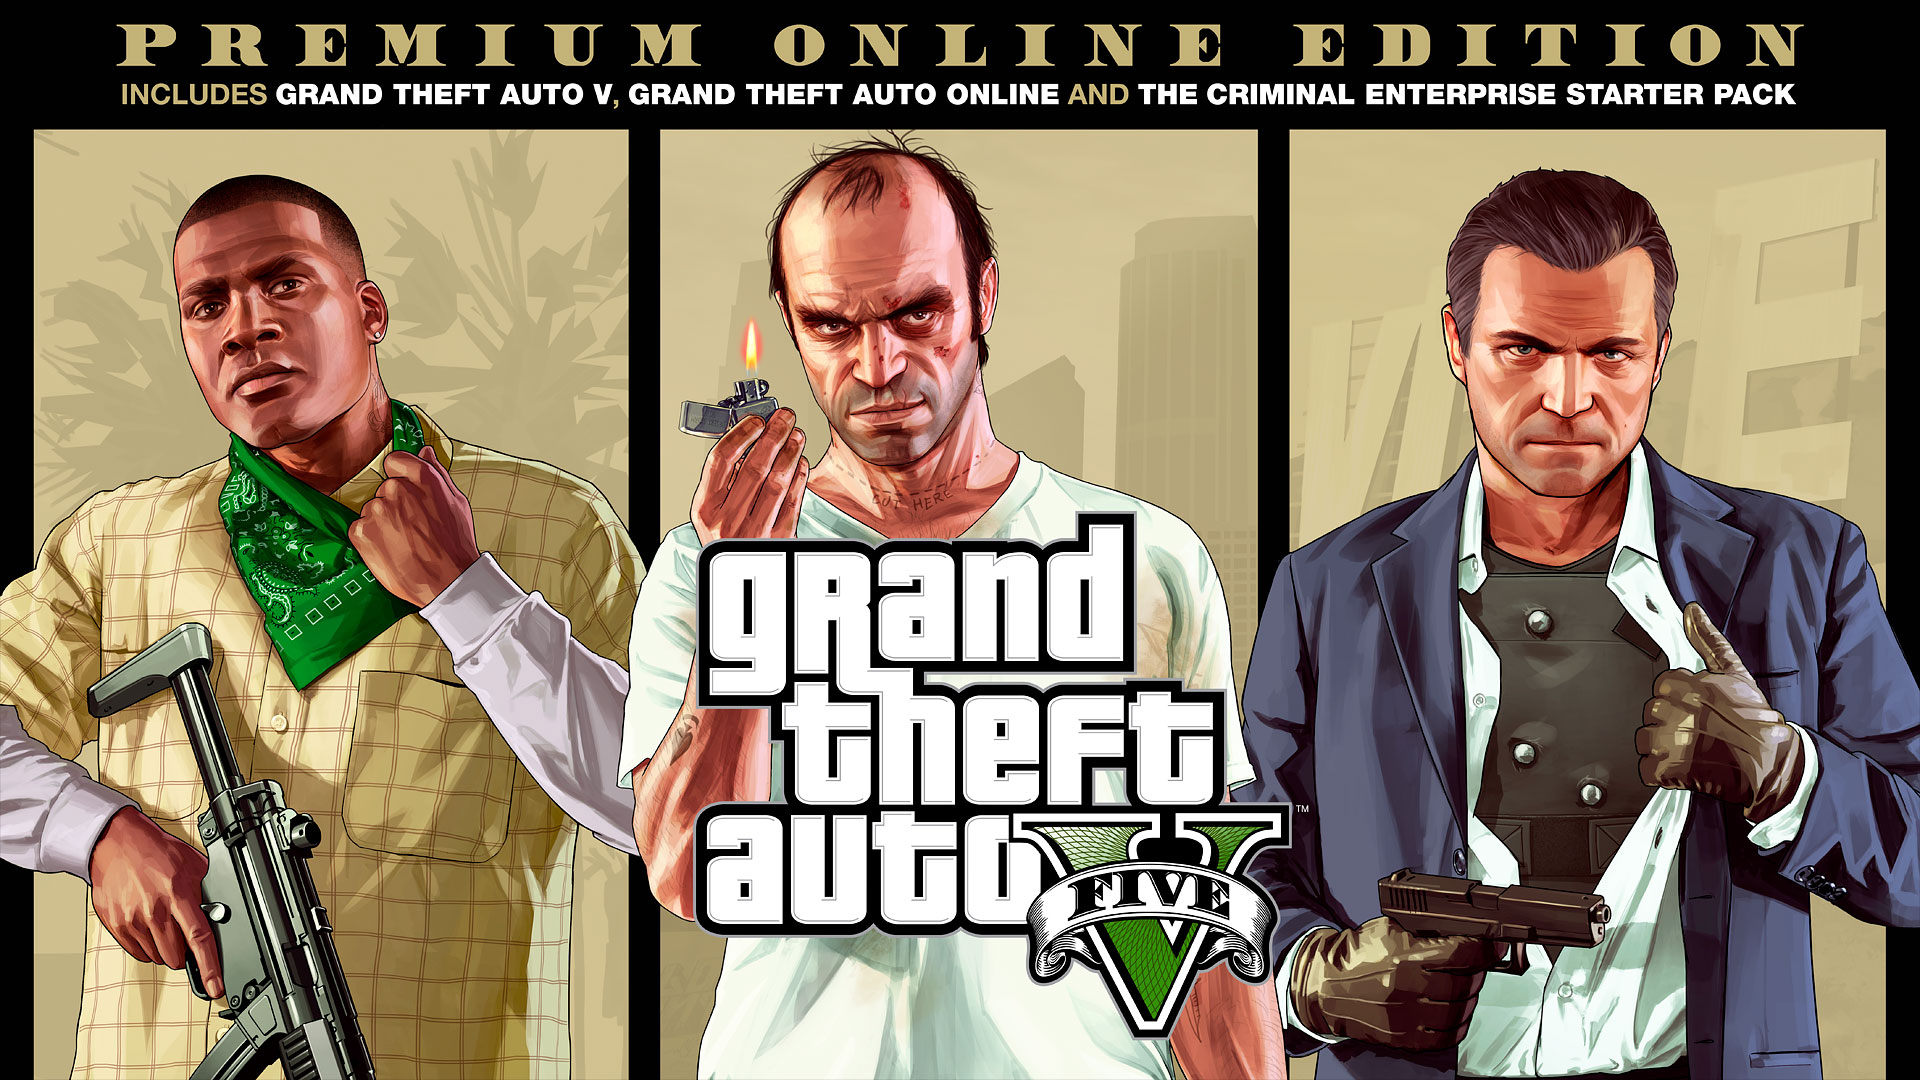 GRAND THEFT AUTO+1KK⭐EPIC GAMES+4 TOP GAMES+REGION FREE